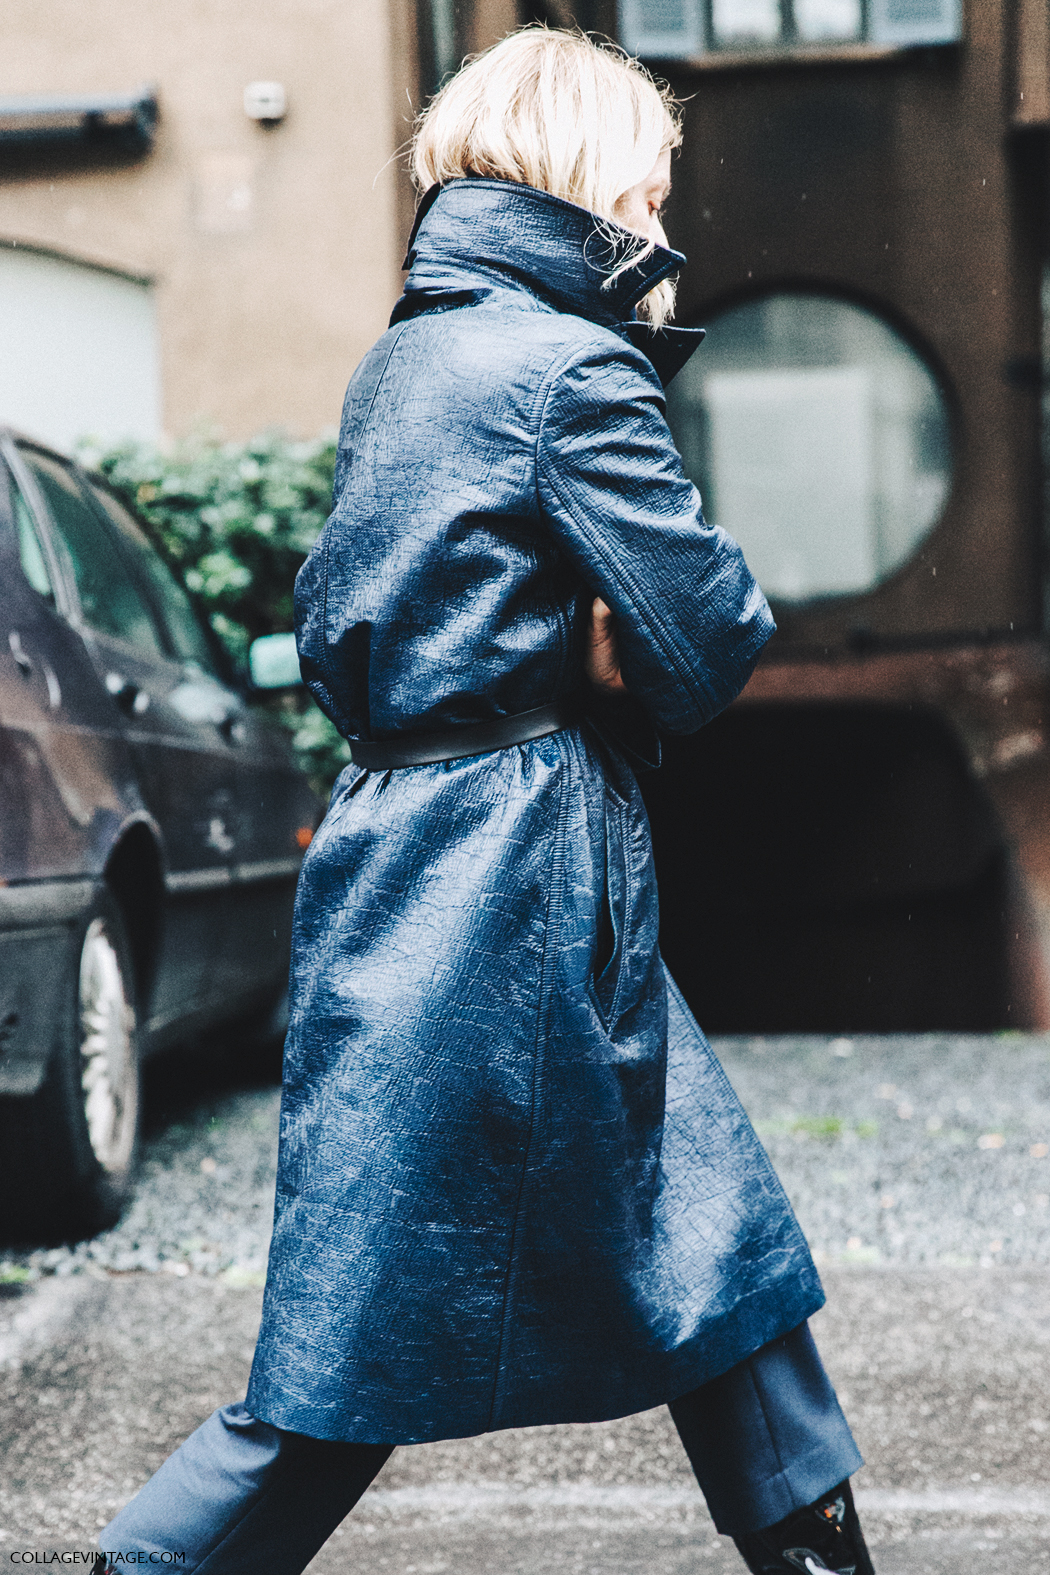 Milan_Fashion_Week_Fall_16-MFW-Street_Style-Collage_Vintage-Rainy_Coat-Navy_Blue-